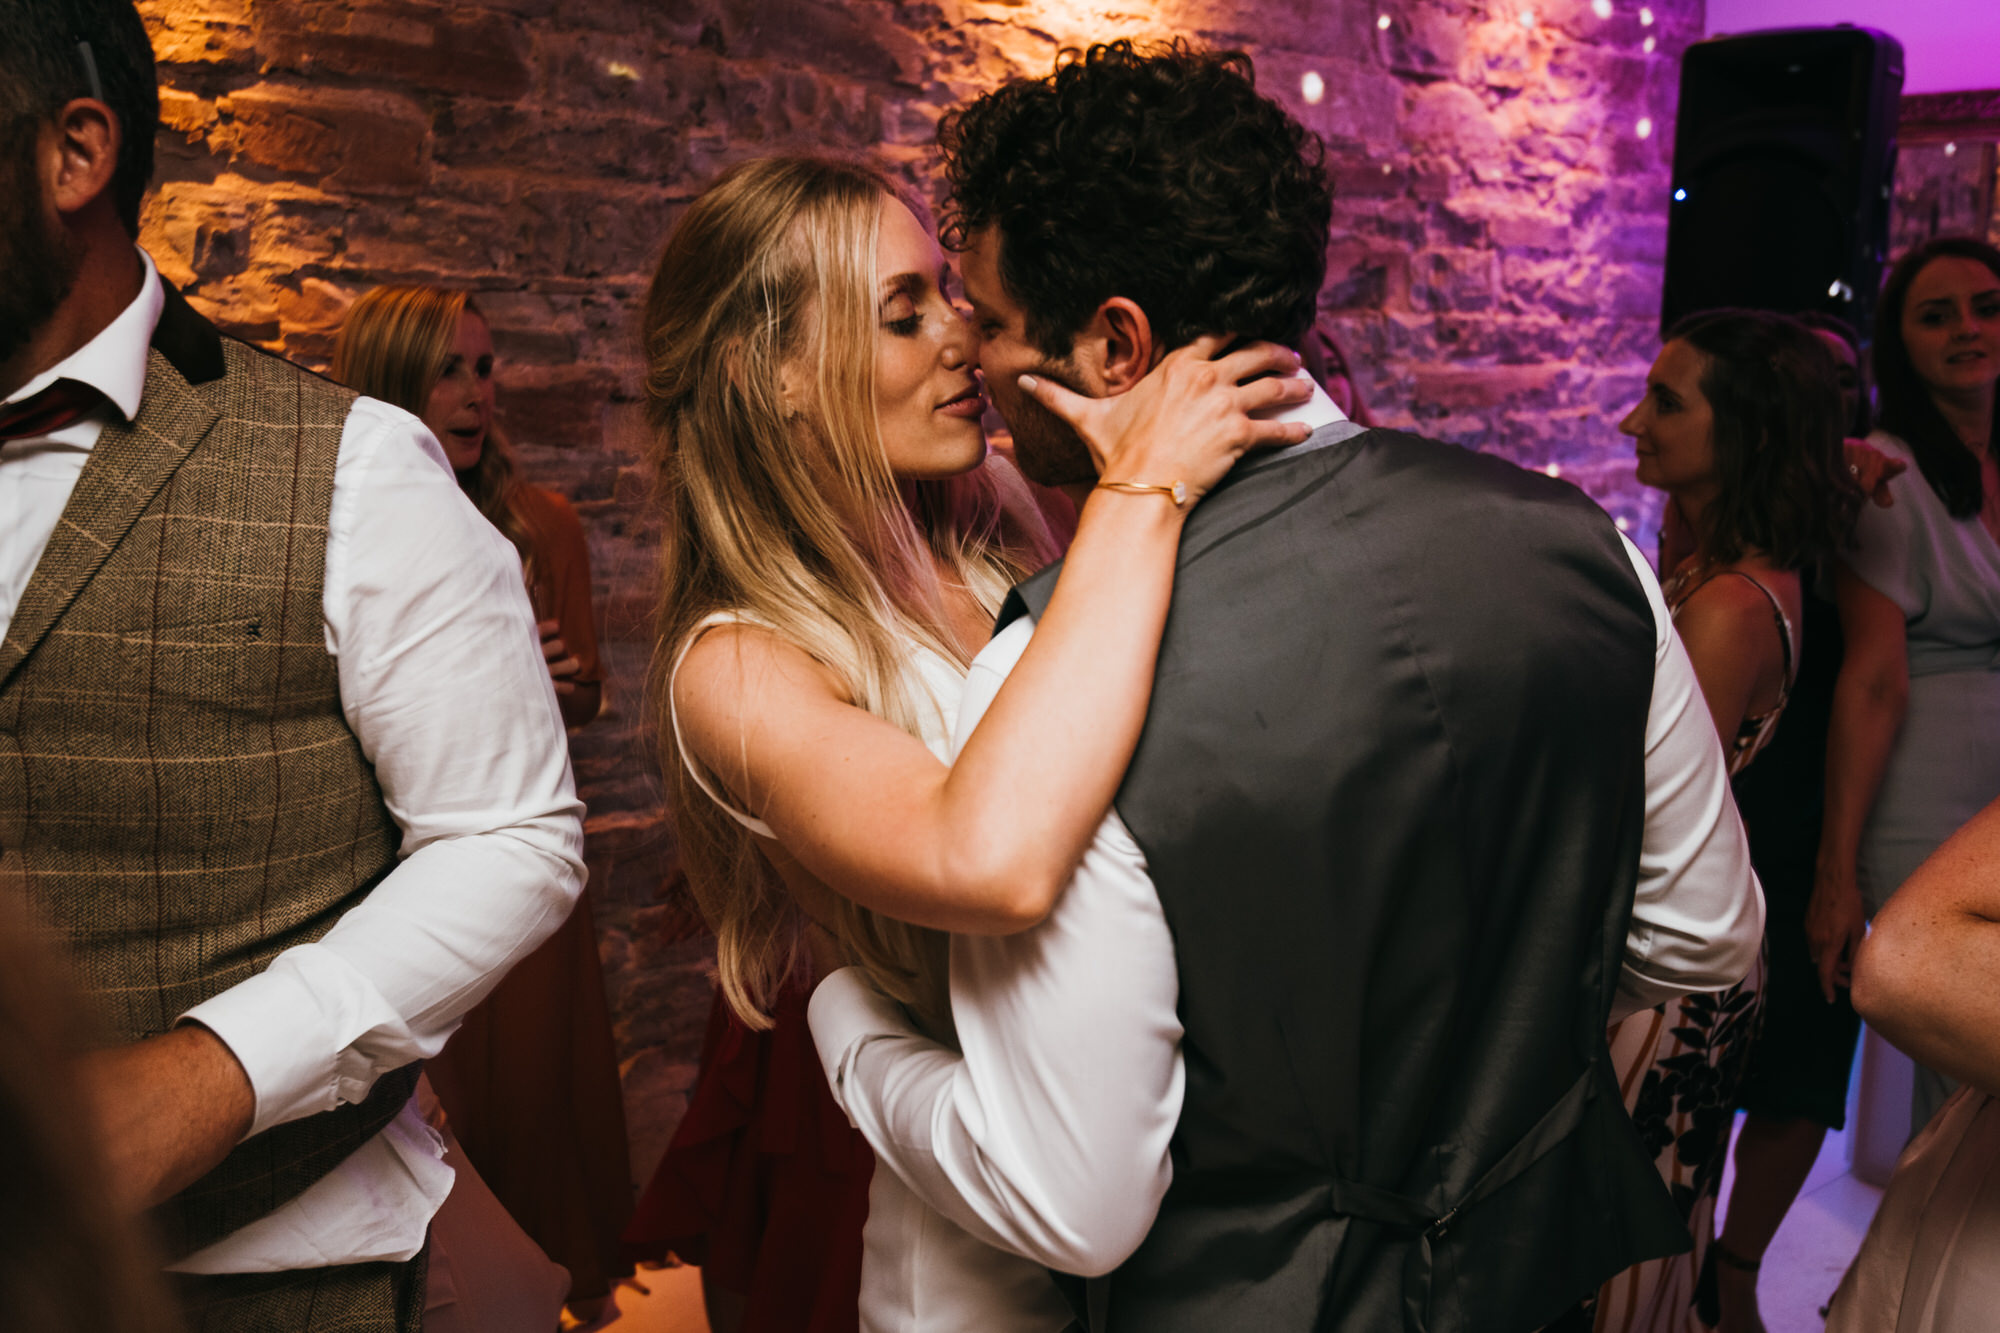 Bride groom kiss on dancefloor